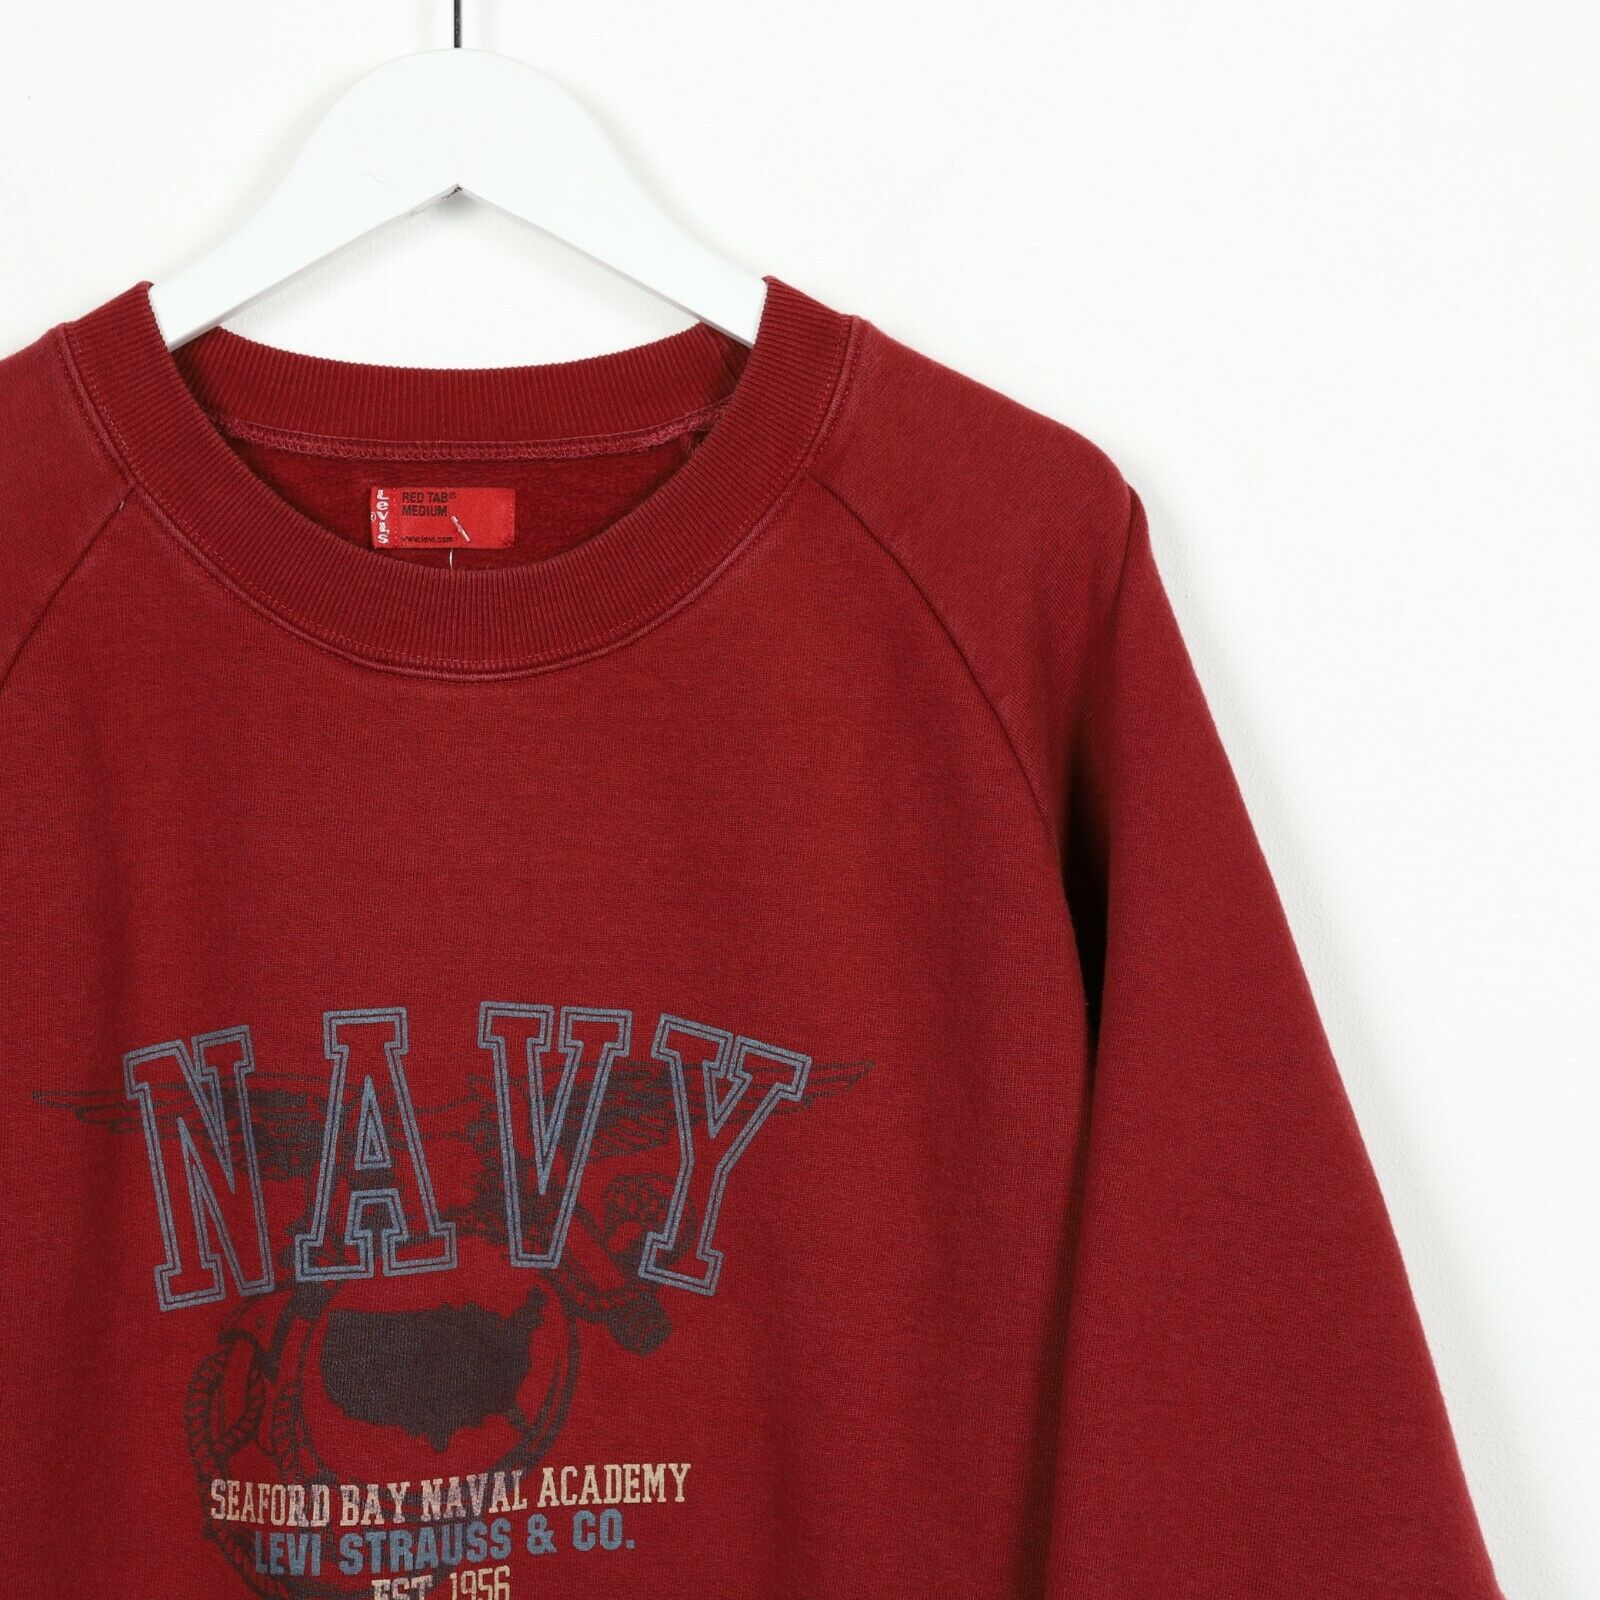 Vintage LEVI'S Graphic Sweatshirt Jumper Burgundy Red Medium M